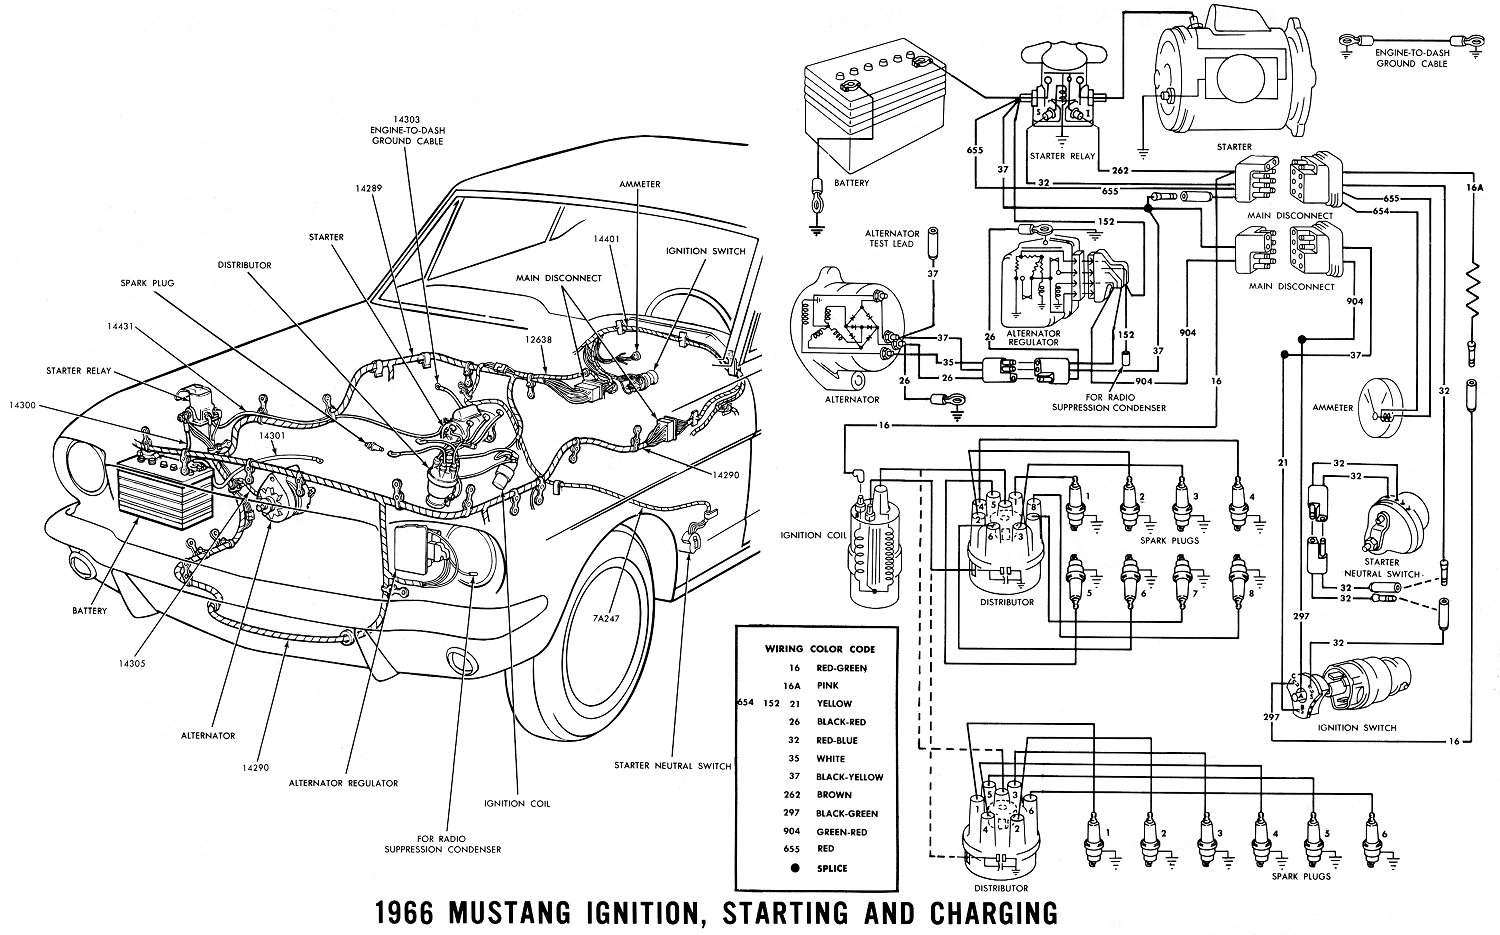 66ignit 1966 mustang wiring diagram 1967 mustang wiring schematic \u2022 wiring 65 mustang alternator wiring diagram at gsmx.co